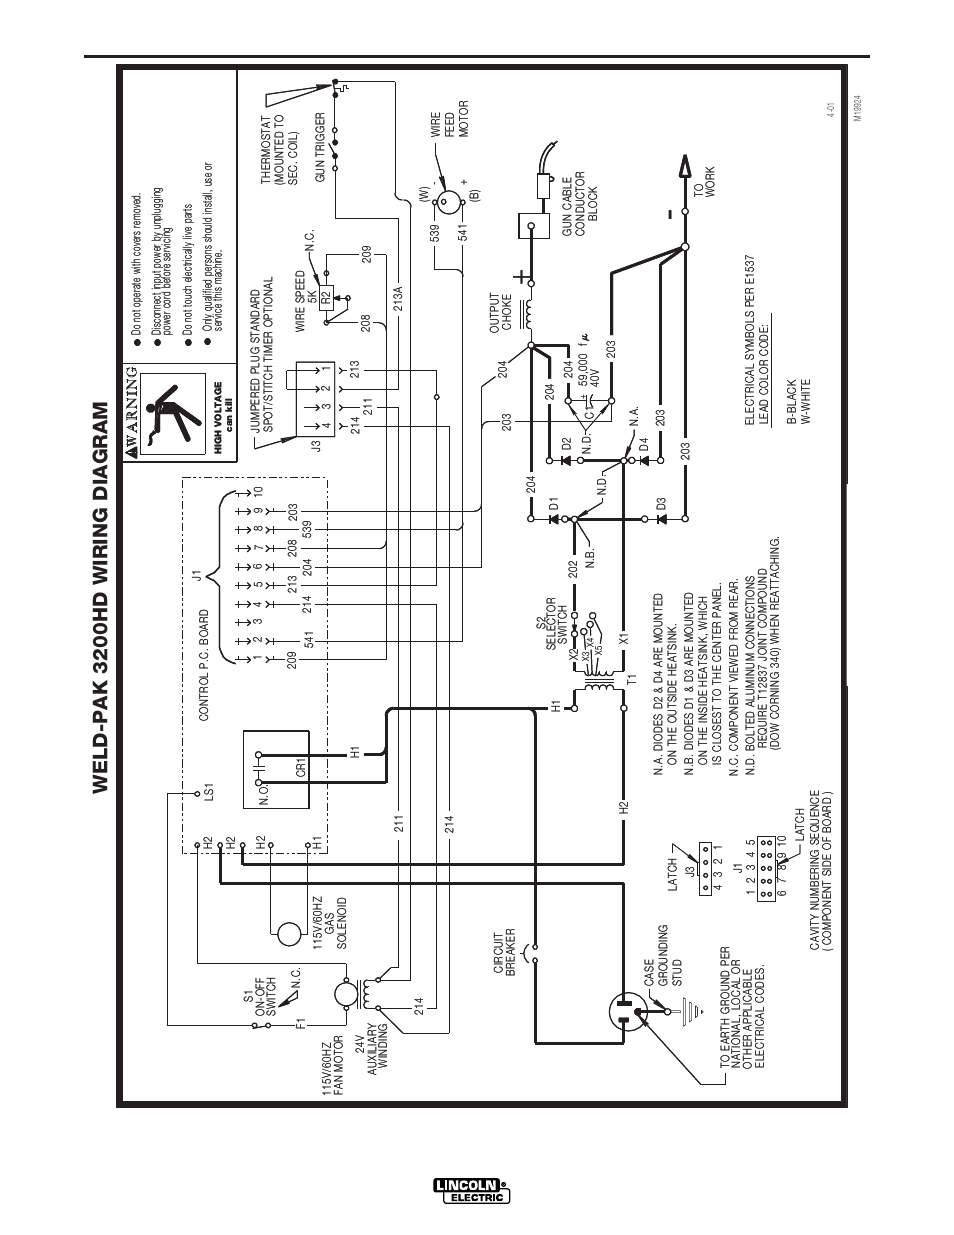 Lovely lincoln 225 wiring diagram images electrical and wiring lovely lincoln welder wiring diagram photos electrical circuit asfbconference2016 Gallery